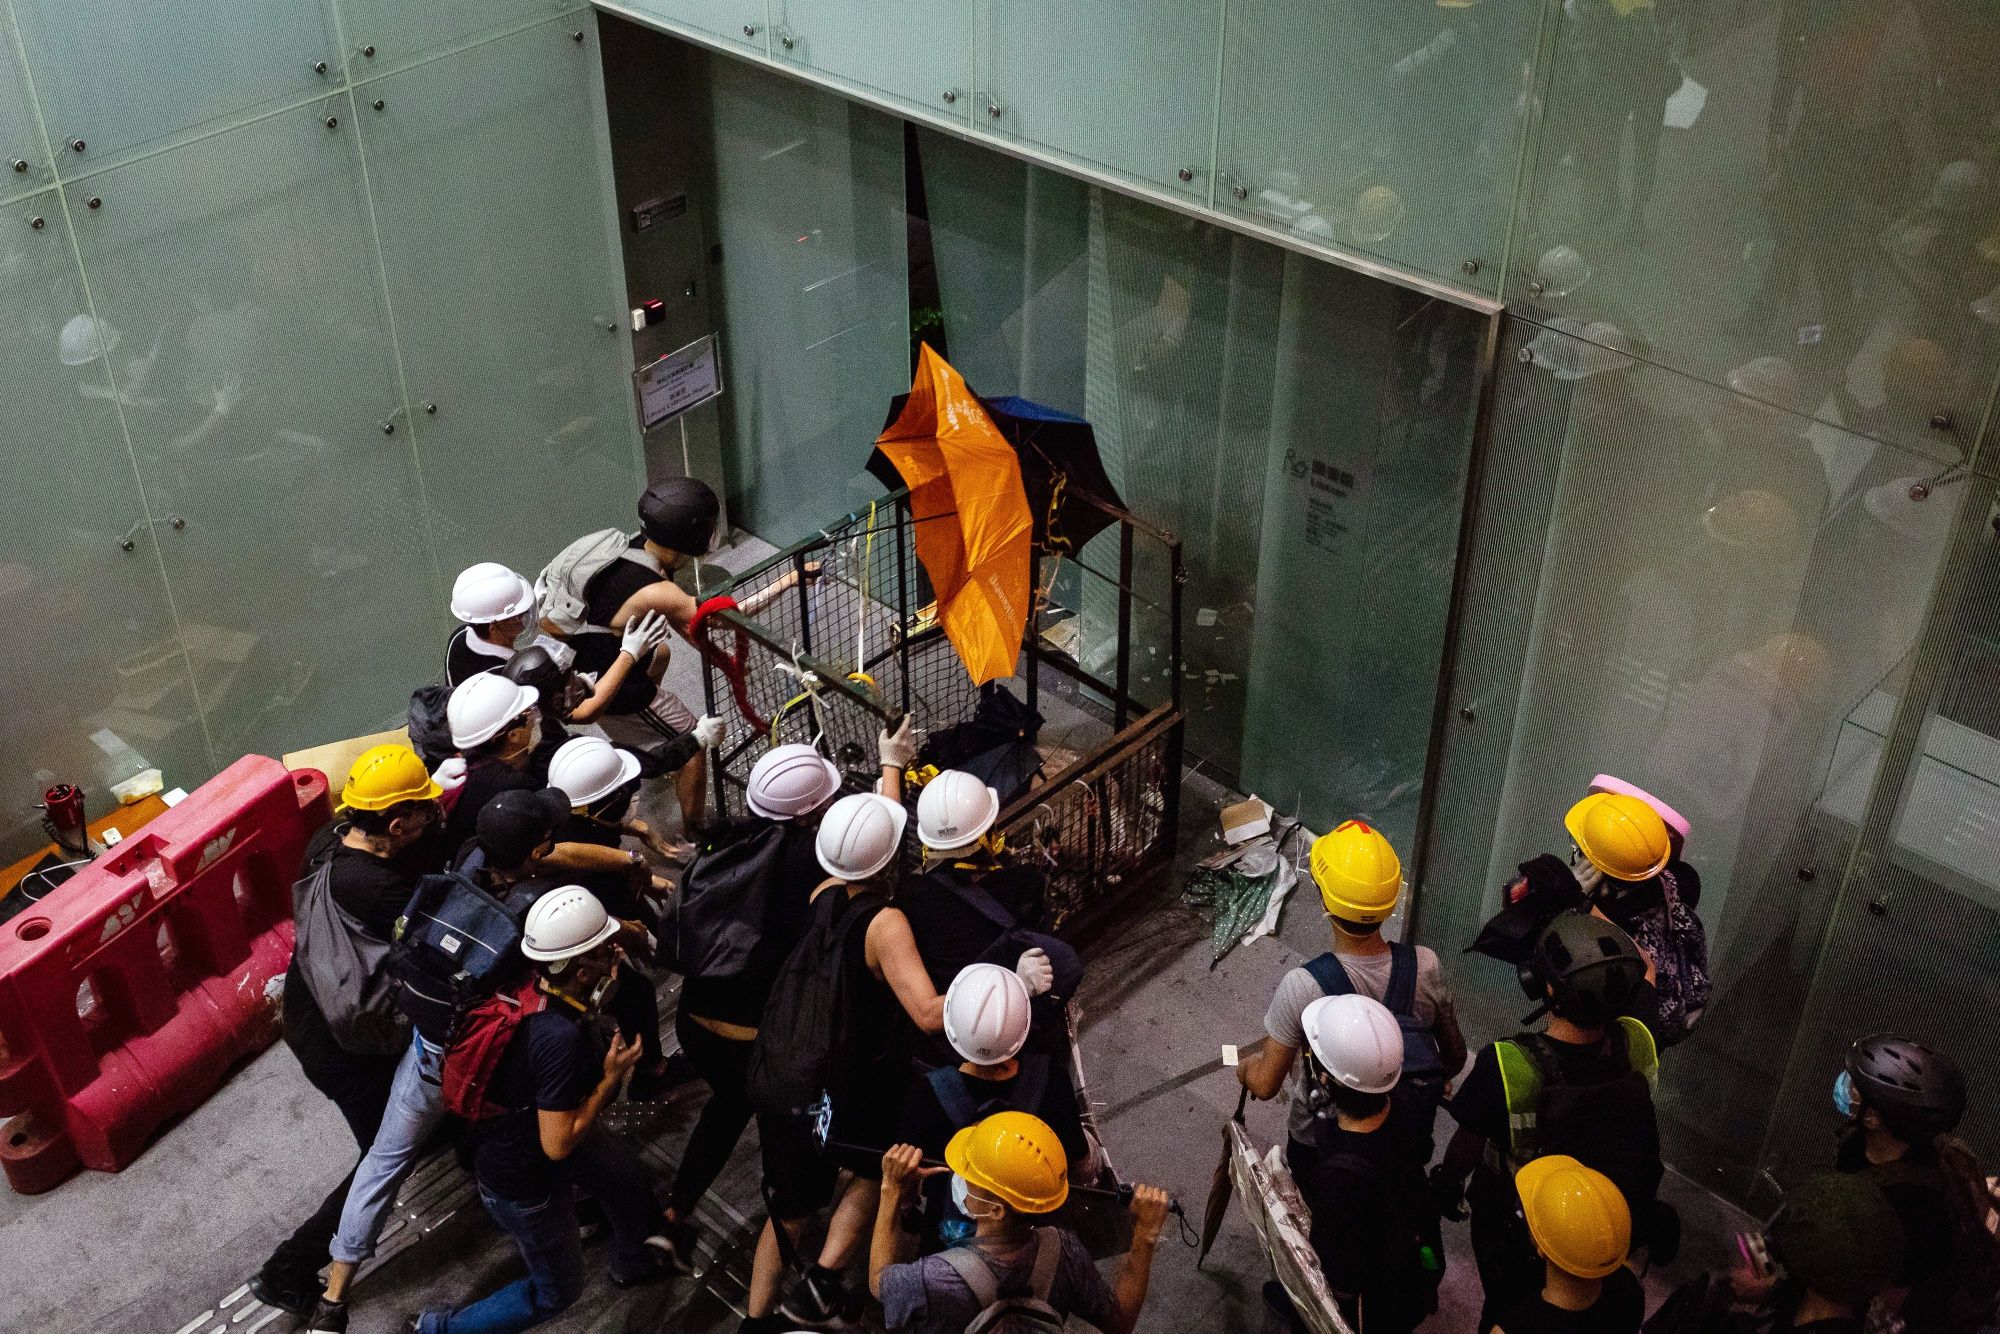 Hong Kong Protesters Who Stormed Legco SeekAsylum in Taiwan, Apple Daily Says